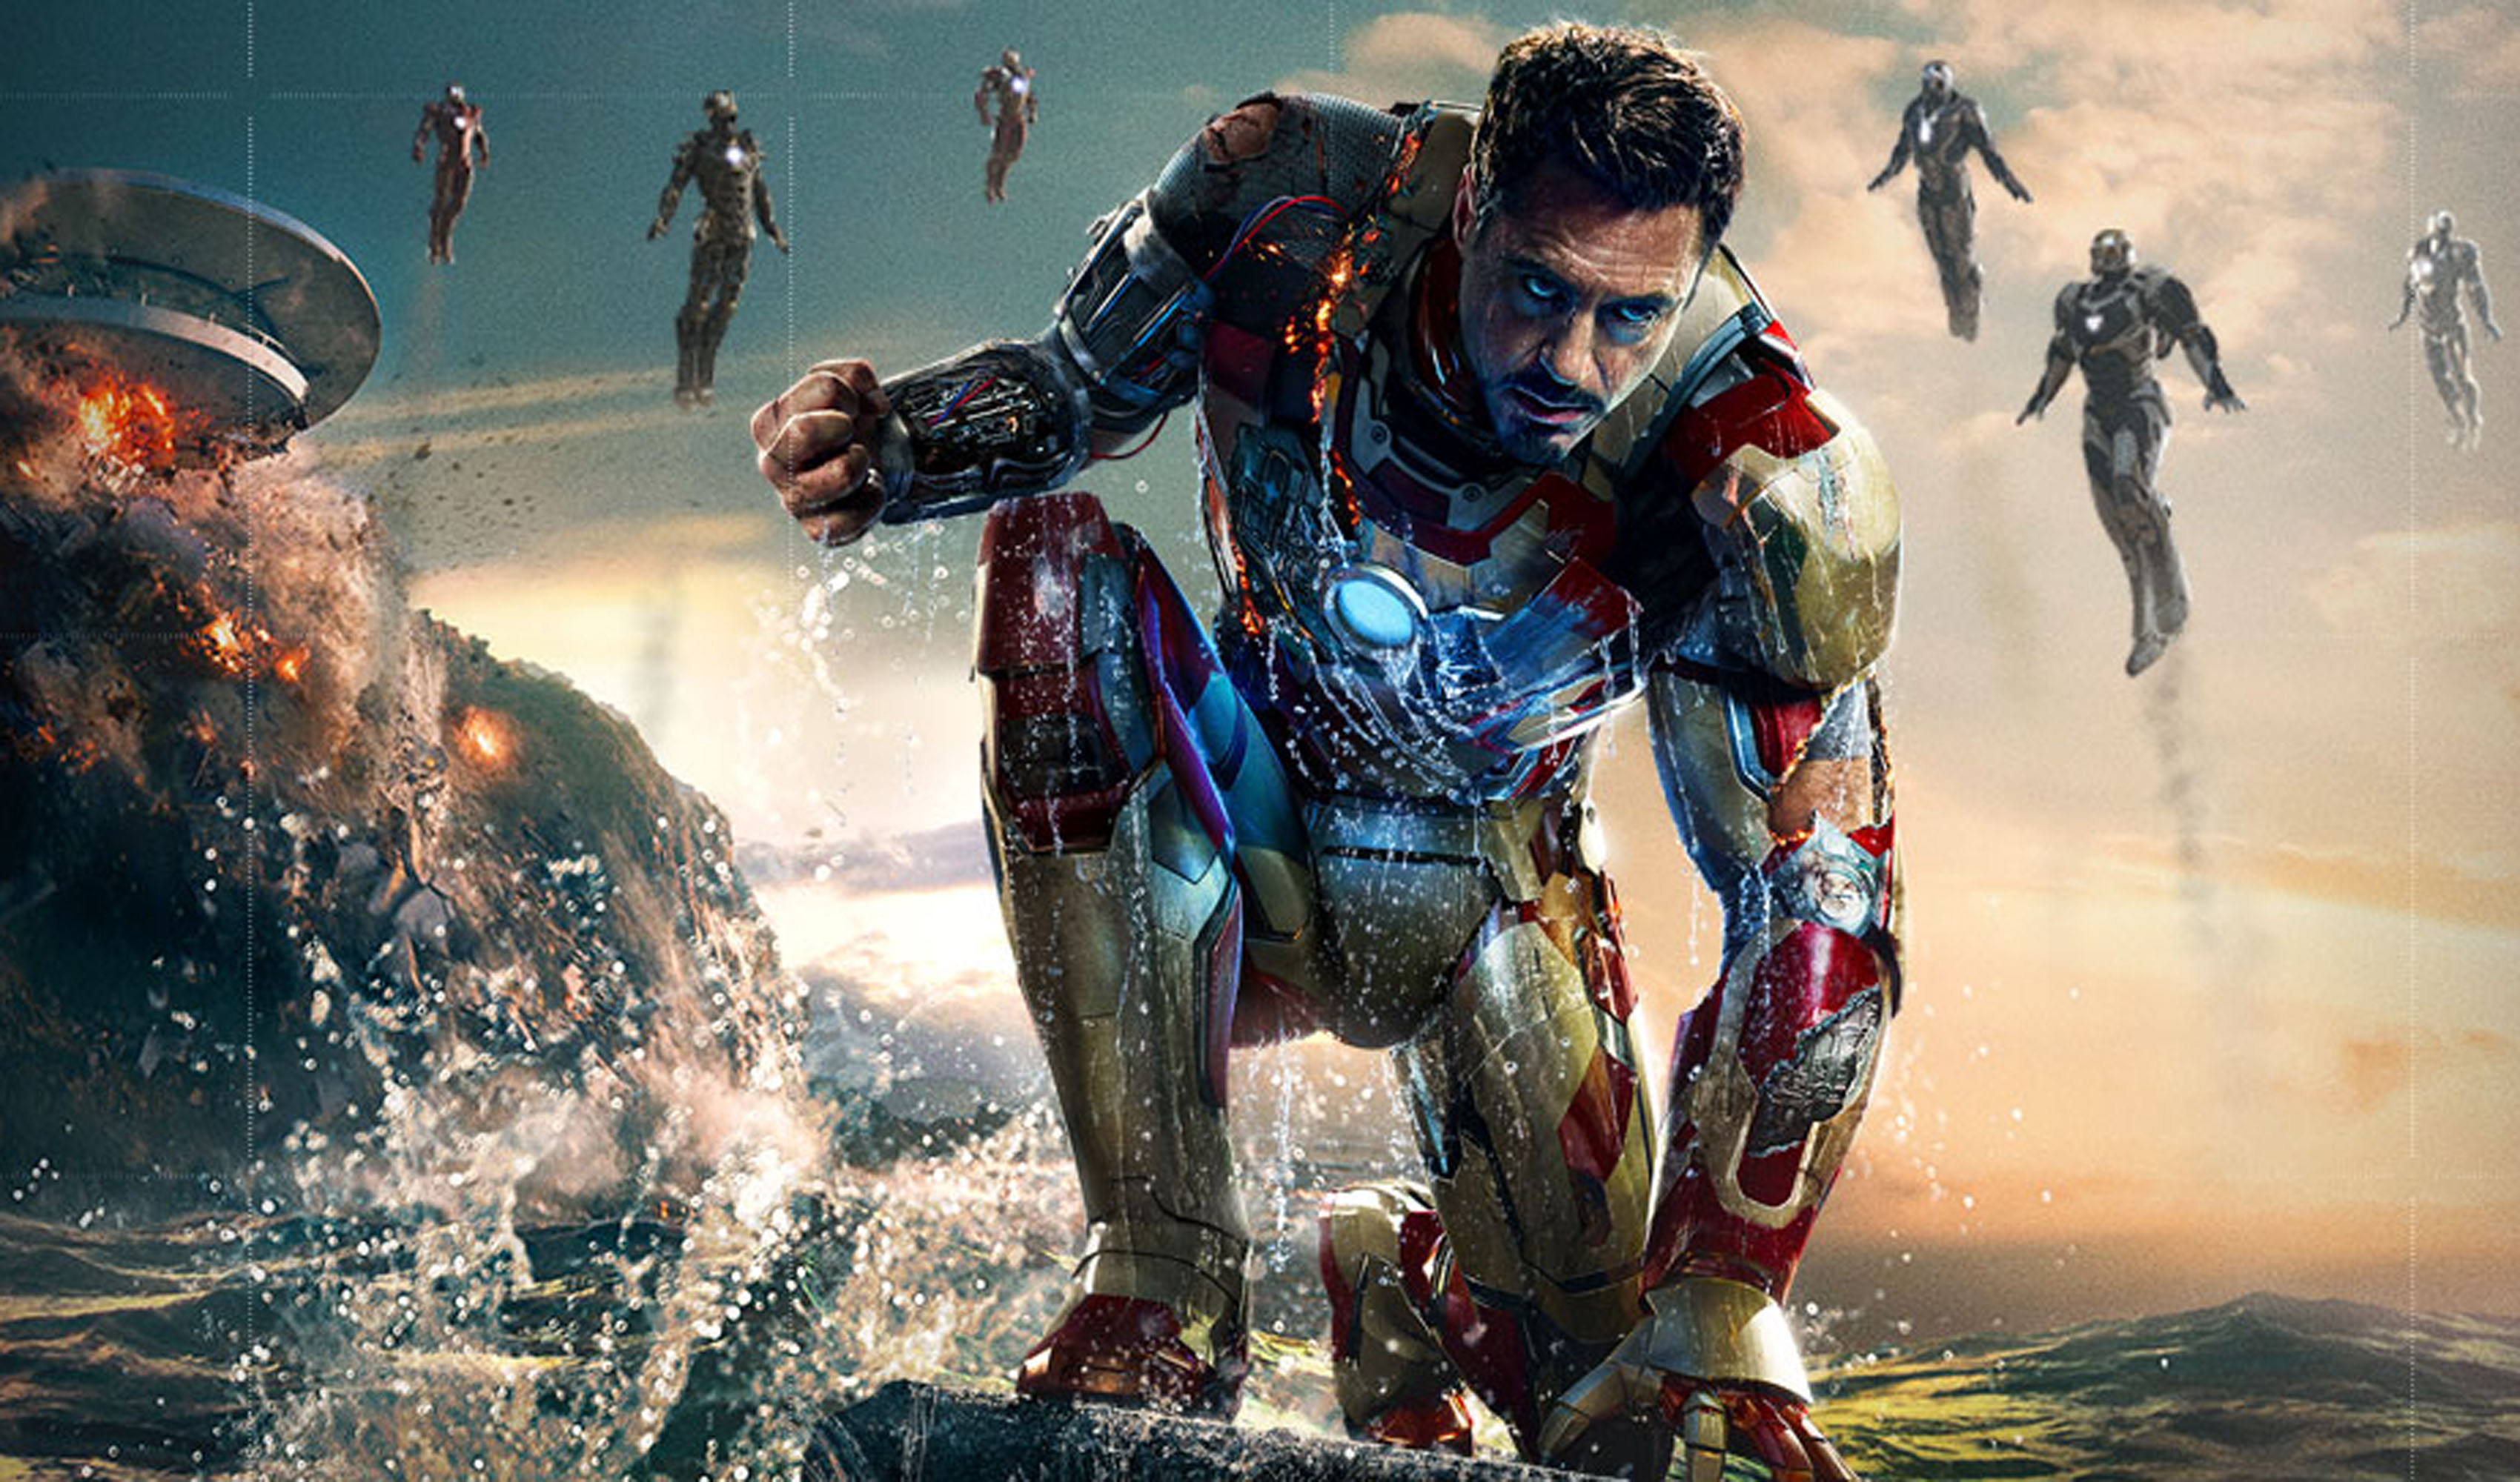 Movie poster image for IRON MAN 3 starring Robert Downey Jr.